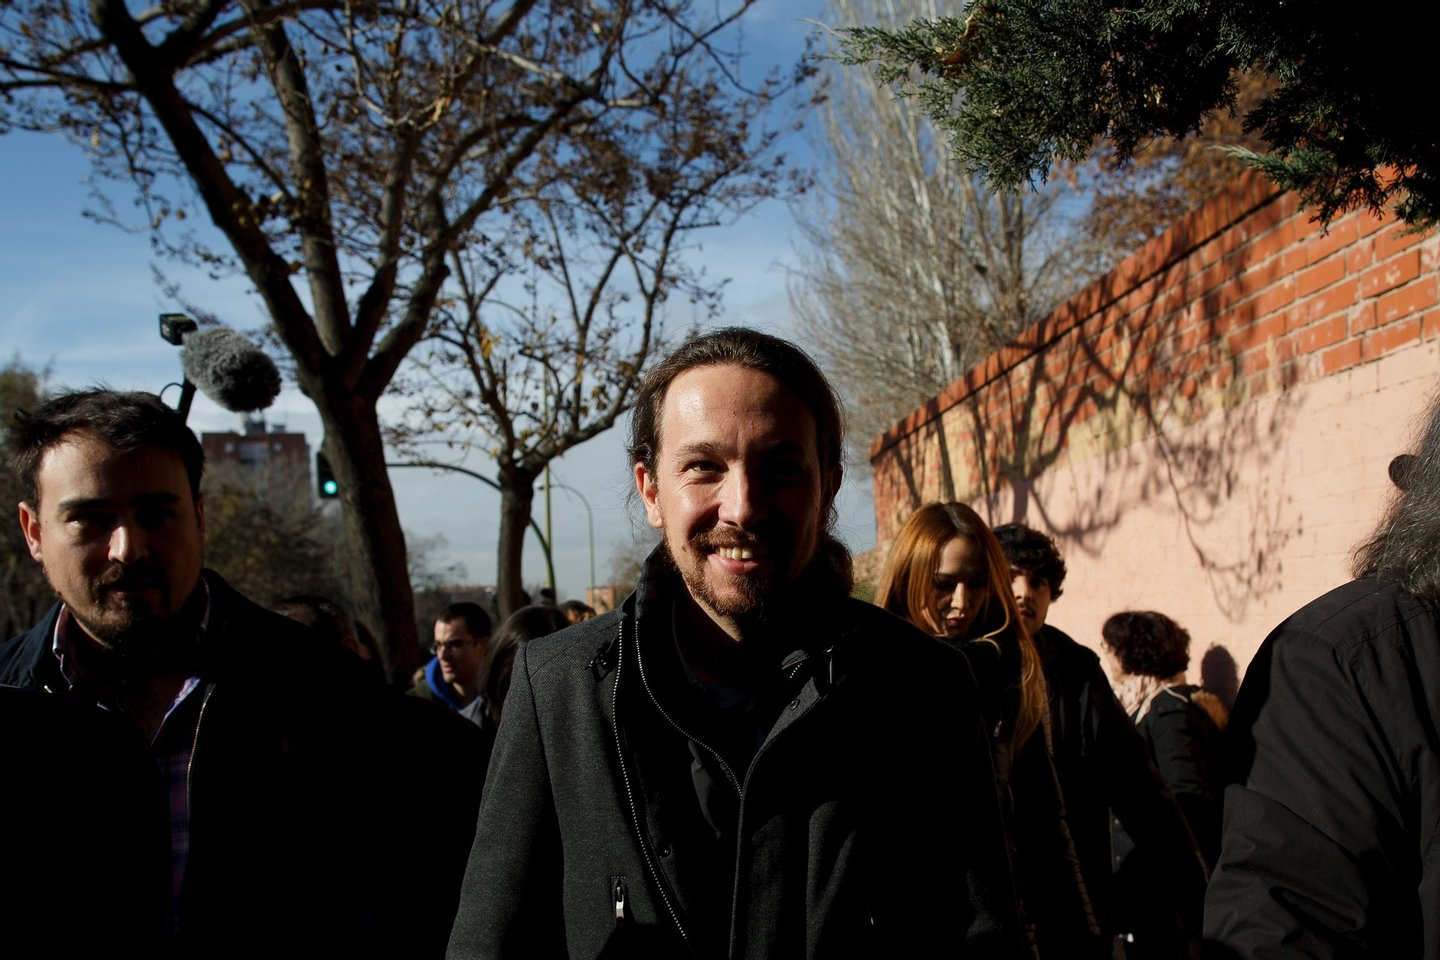 MADRID, SPAIN - DECEMBER 20: Podemos (We Can) leader Pablo Iglesias looks on as he walks after casting his vote at a polling station on December 20, 2015 in Madrid, Spain. Spaniards went to the polls today to vote for 350 members of the parliament and 208 senators. For the first time since 1982, the two traditional Spanish political parties, right-wing Partido Popular (People's Party) and centre-left wing Partido Socialista Obrero Espanol PSOE (Spanish Socialist Workers' Party), held a tight election race with two new contenders, Ciudadanos (Citizens) and Podemos (We Can) attracting right-leaning and left-leaning voters respectively. (Photo by Pablo Blazquez Dominguez/Getty Images)